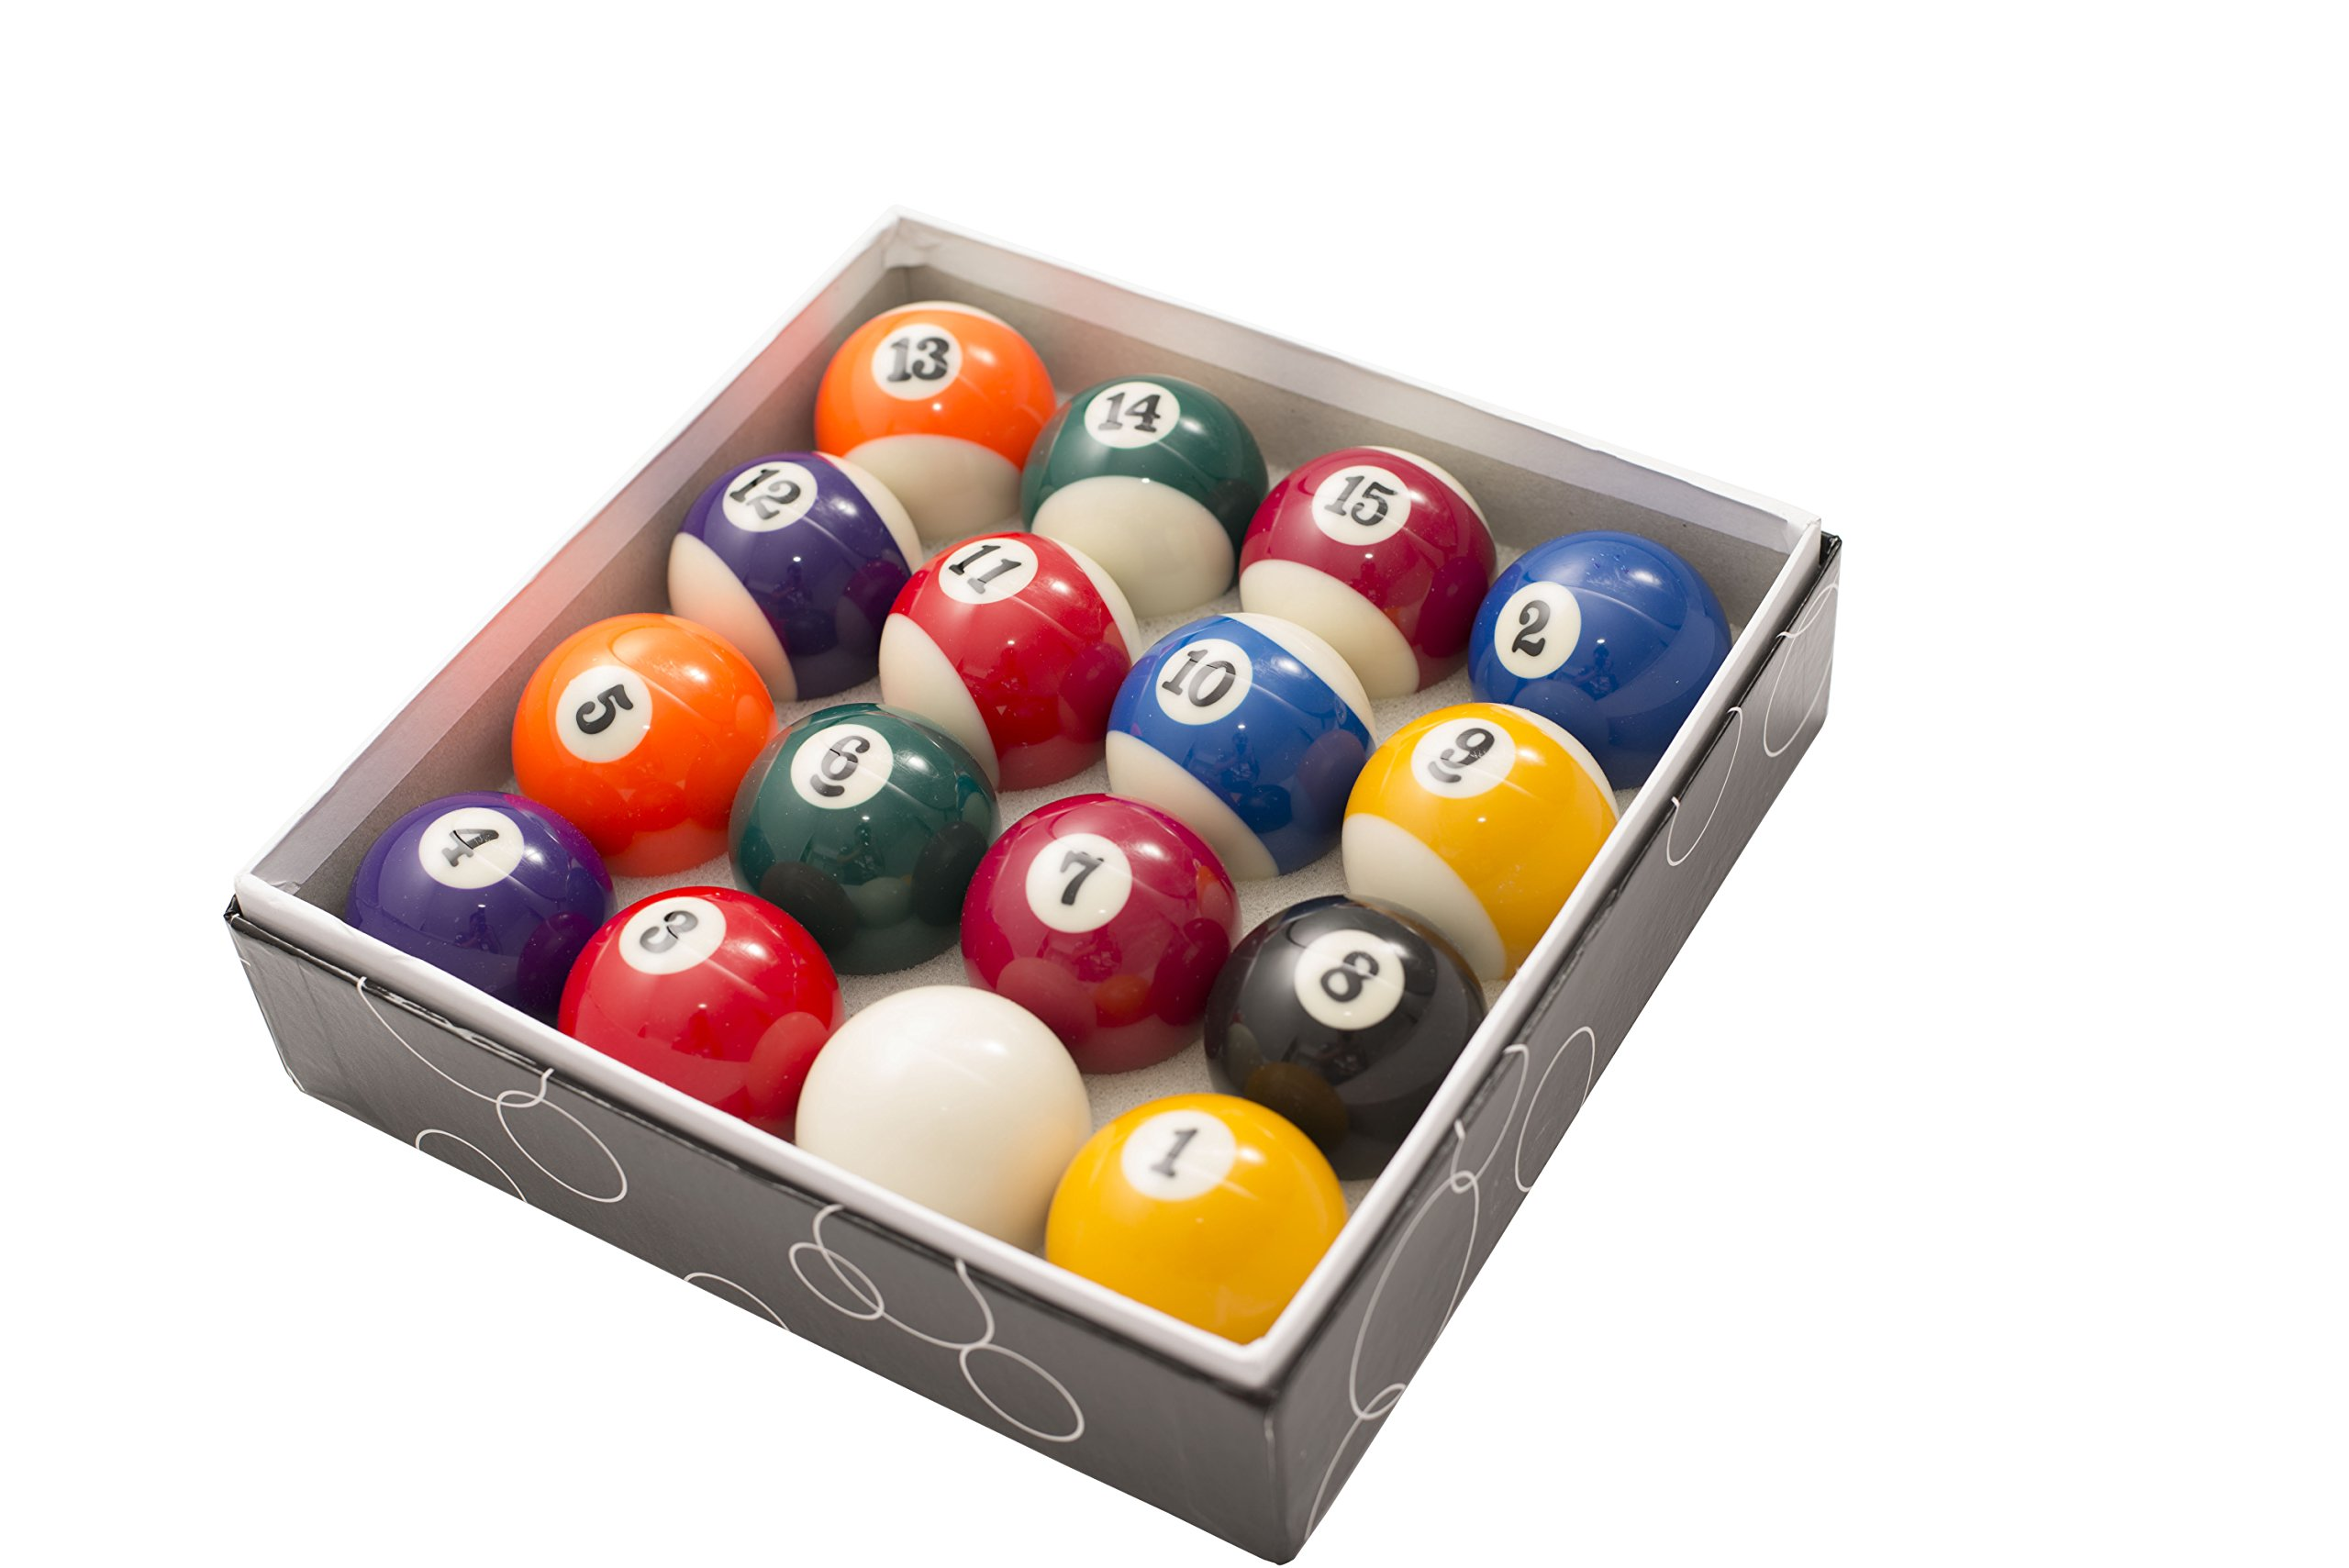 2 1/4 Inch Standard American Pool Table Billiard Ball Set Precision Engineered by Transcend United